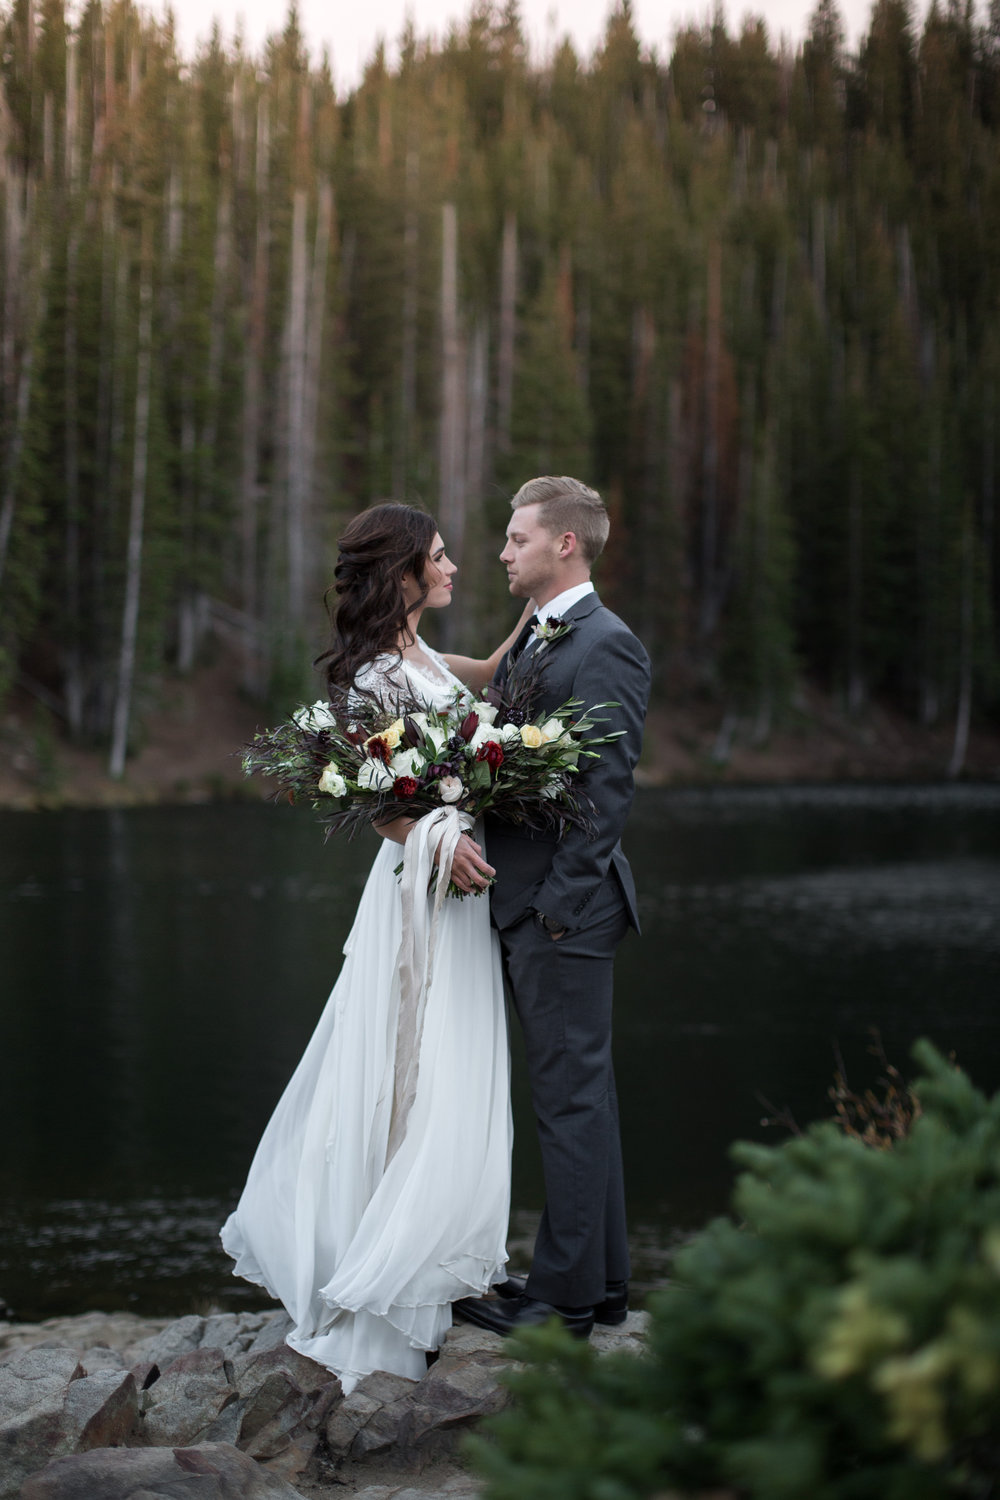 UtahValleyBrideShootTR2016 (18 of 110).jpg